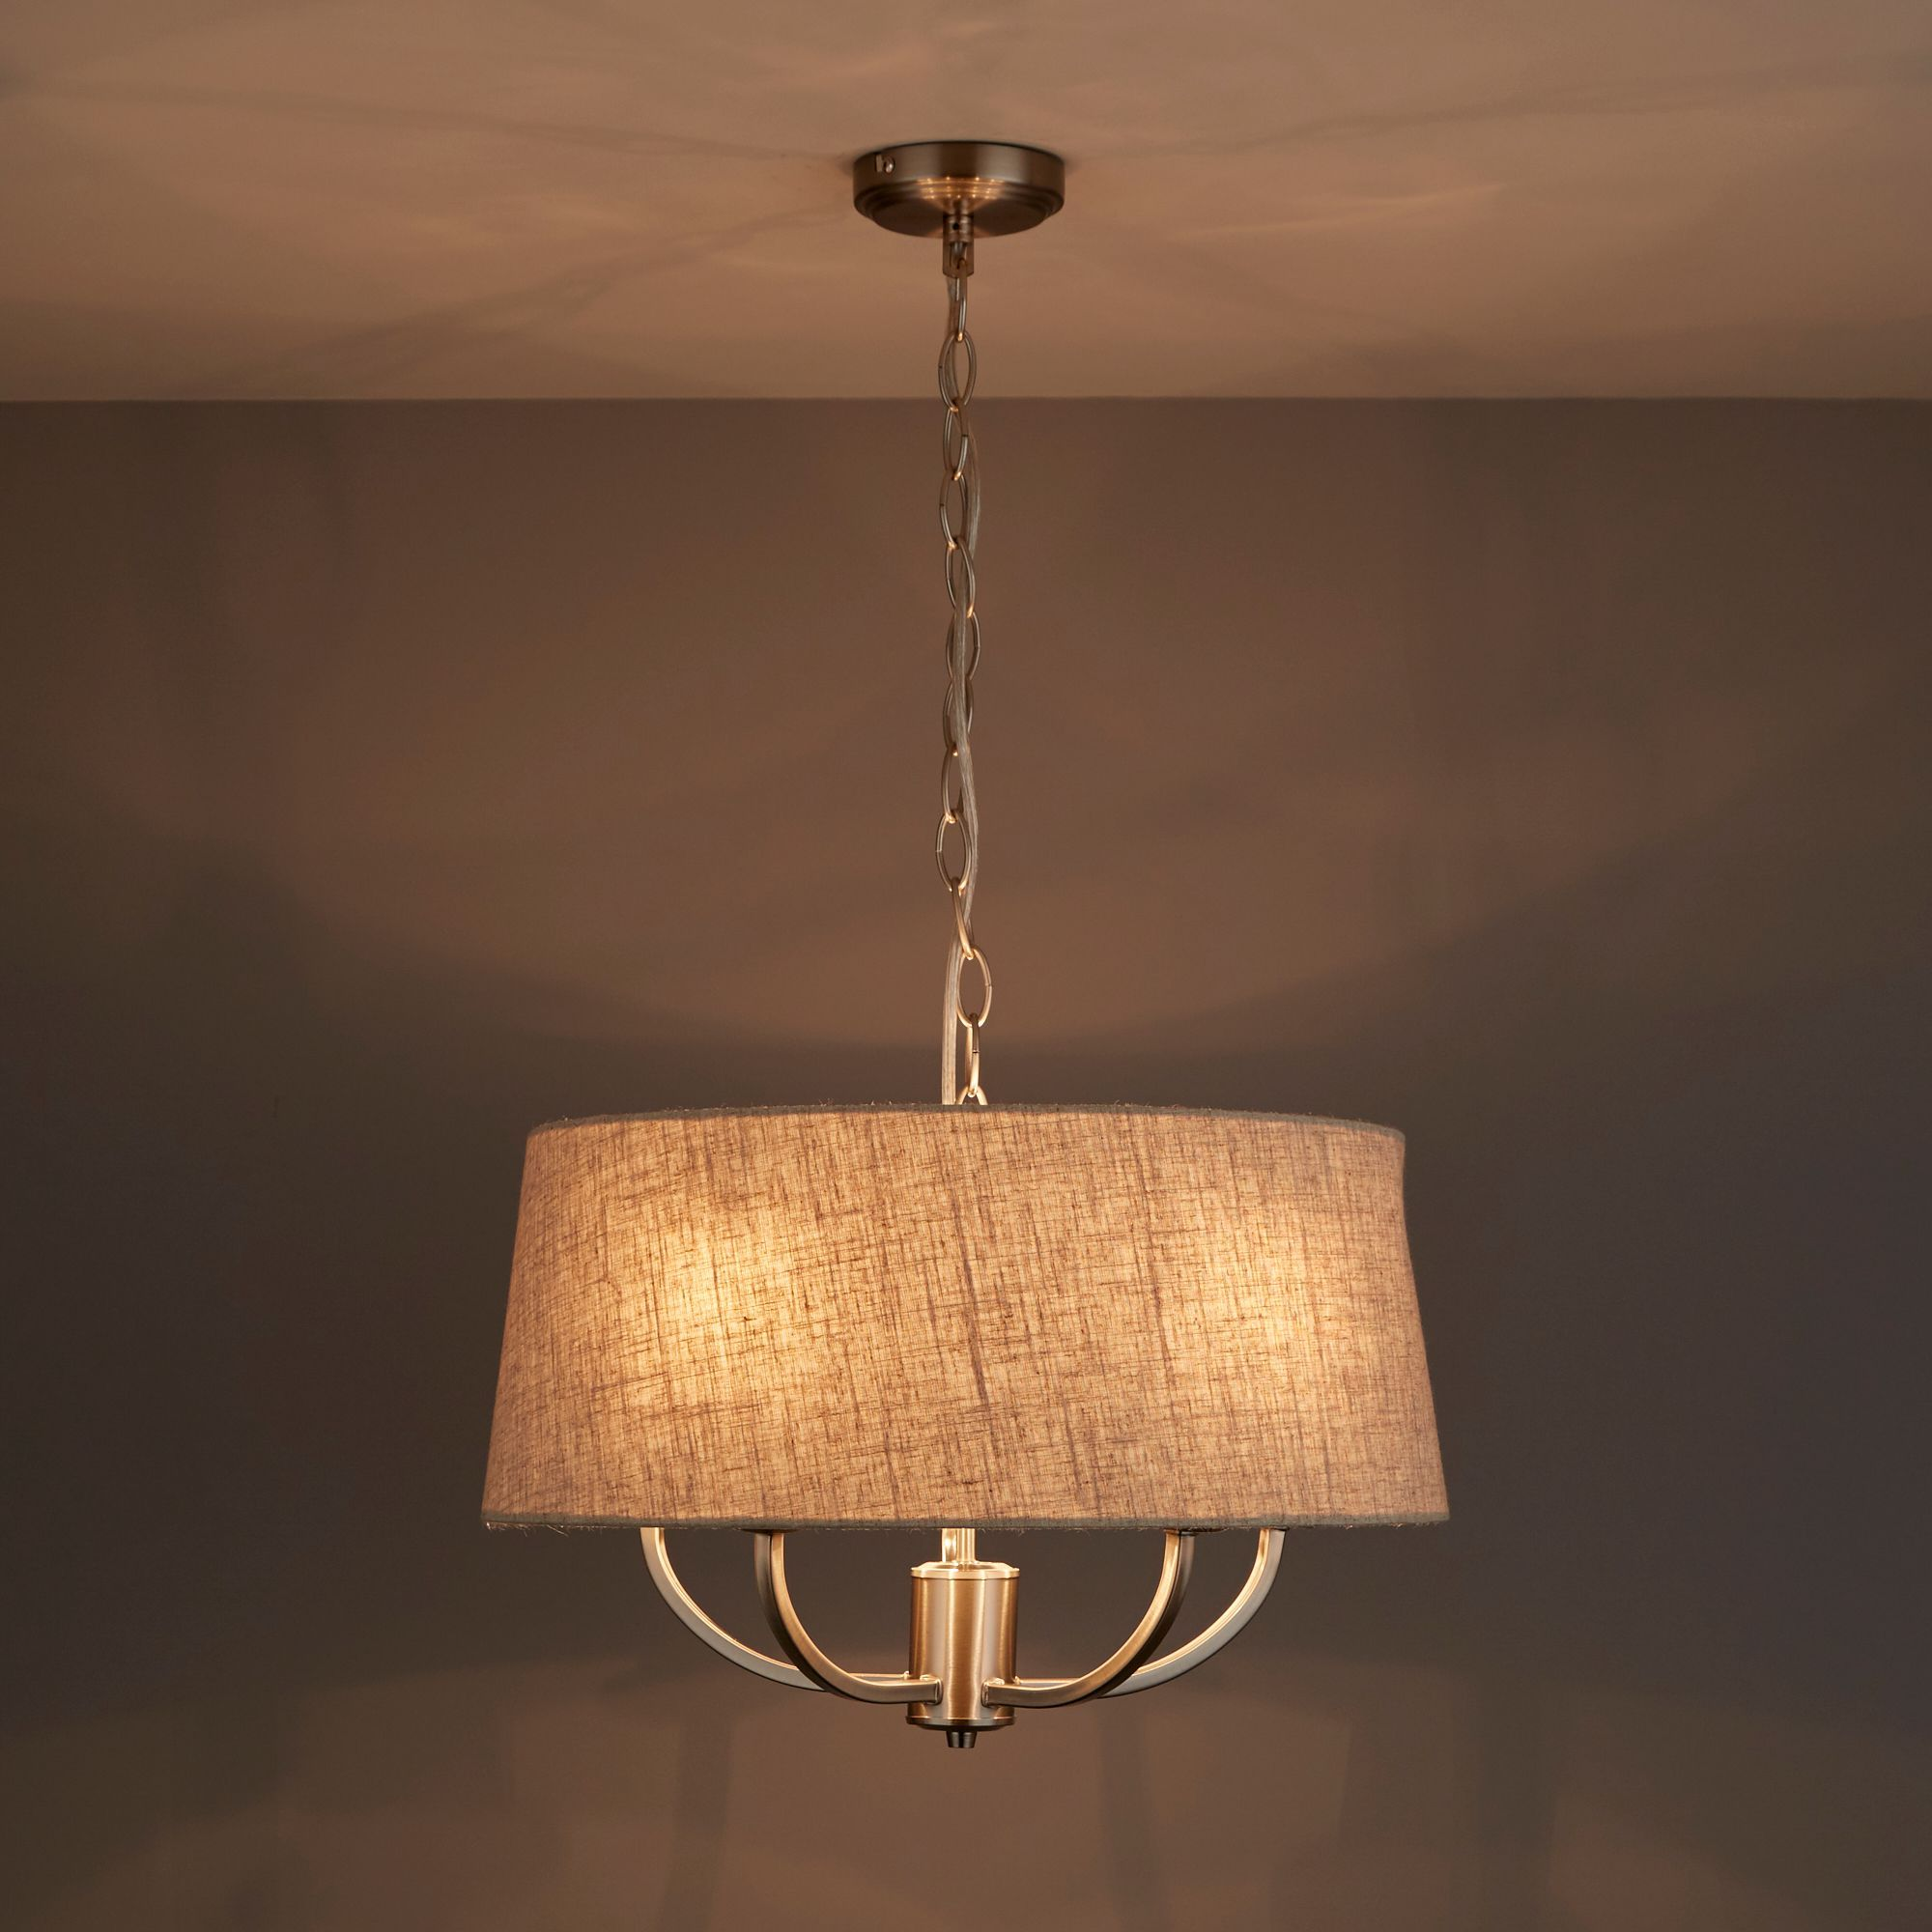 Hampstead natural linen effect 5 lamp ceiling light natural linen hampstead natural linen effect 5 lamp ceiling light departments diy at bq aloadofball Choice Image